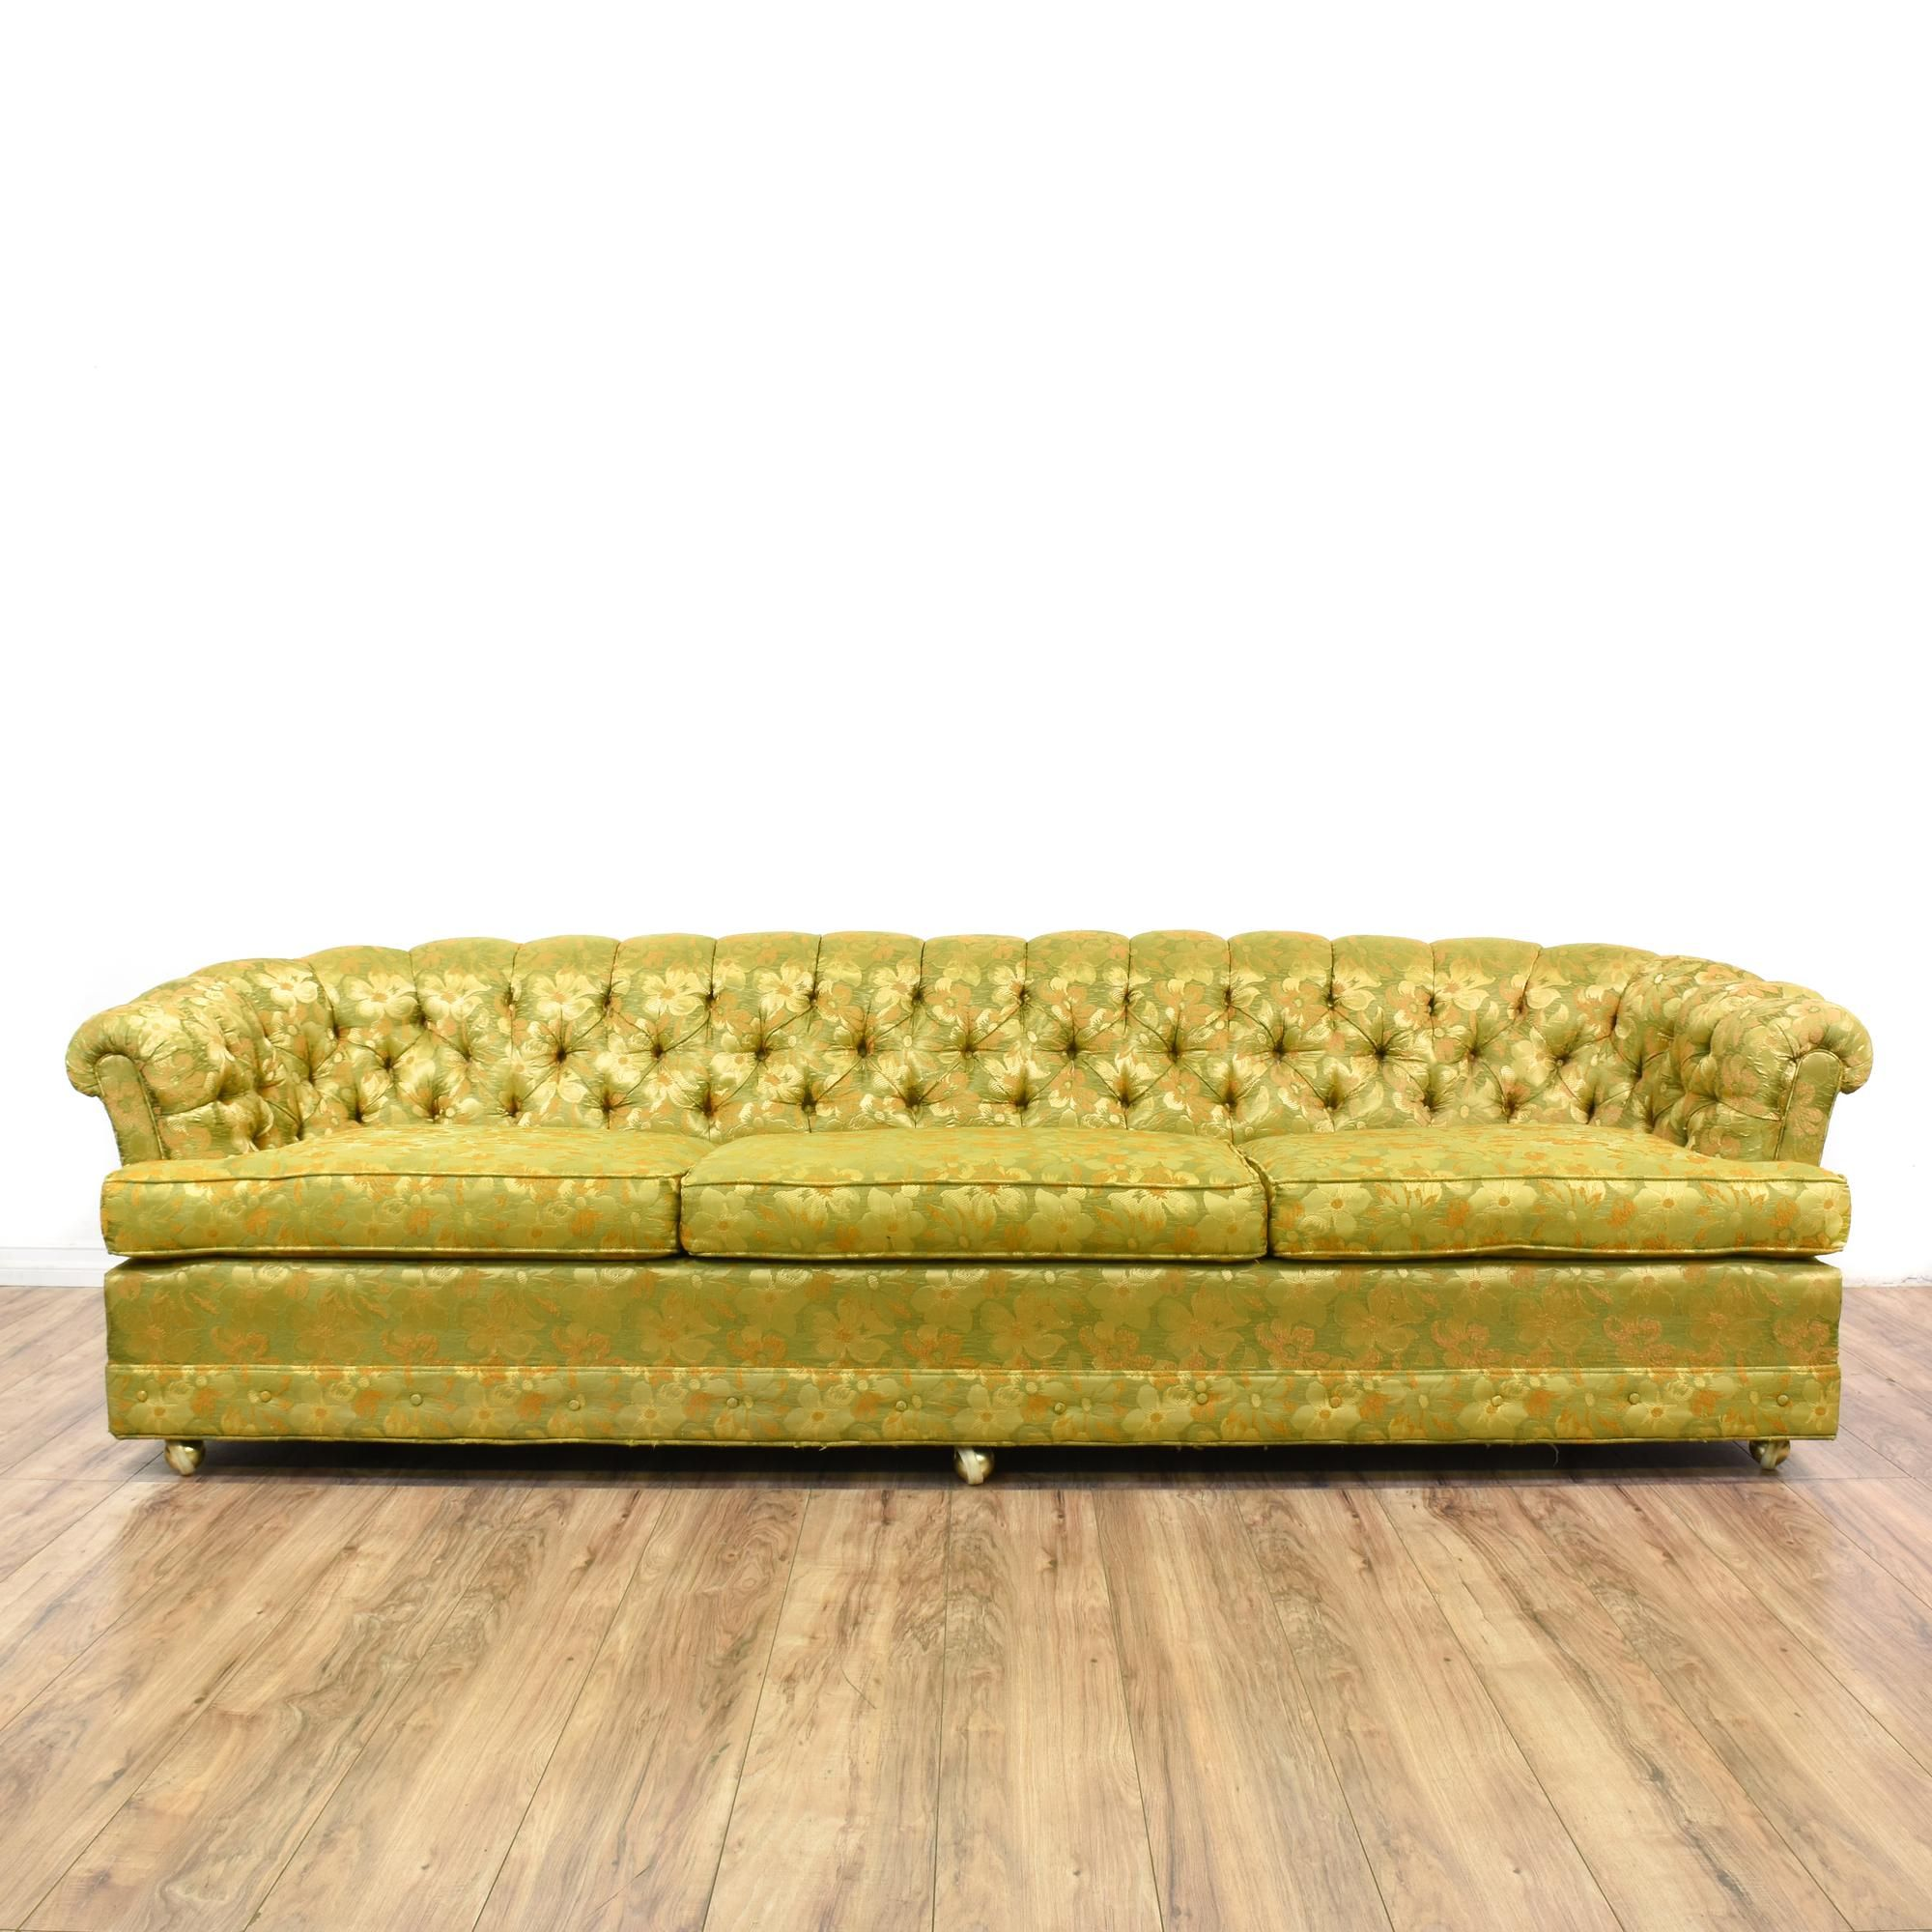 This Long Chesterfield Sofa Is Upholstered In A Durable Silk Like Floral  Print With A